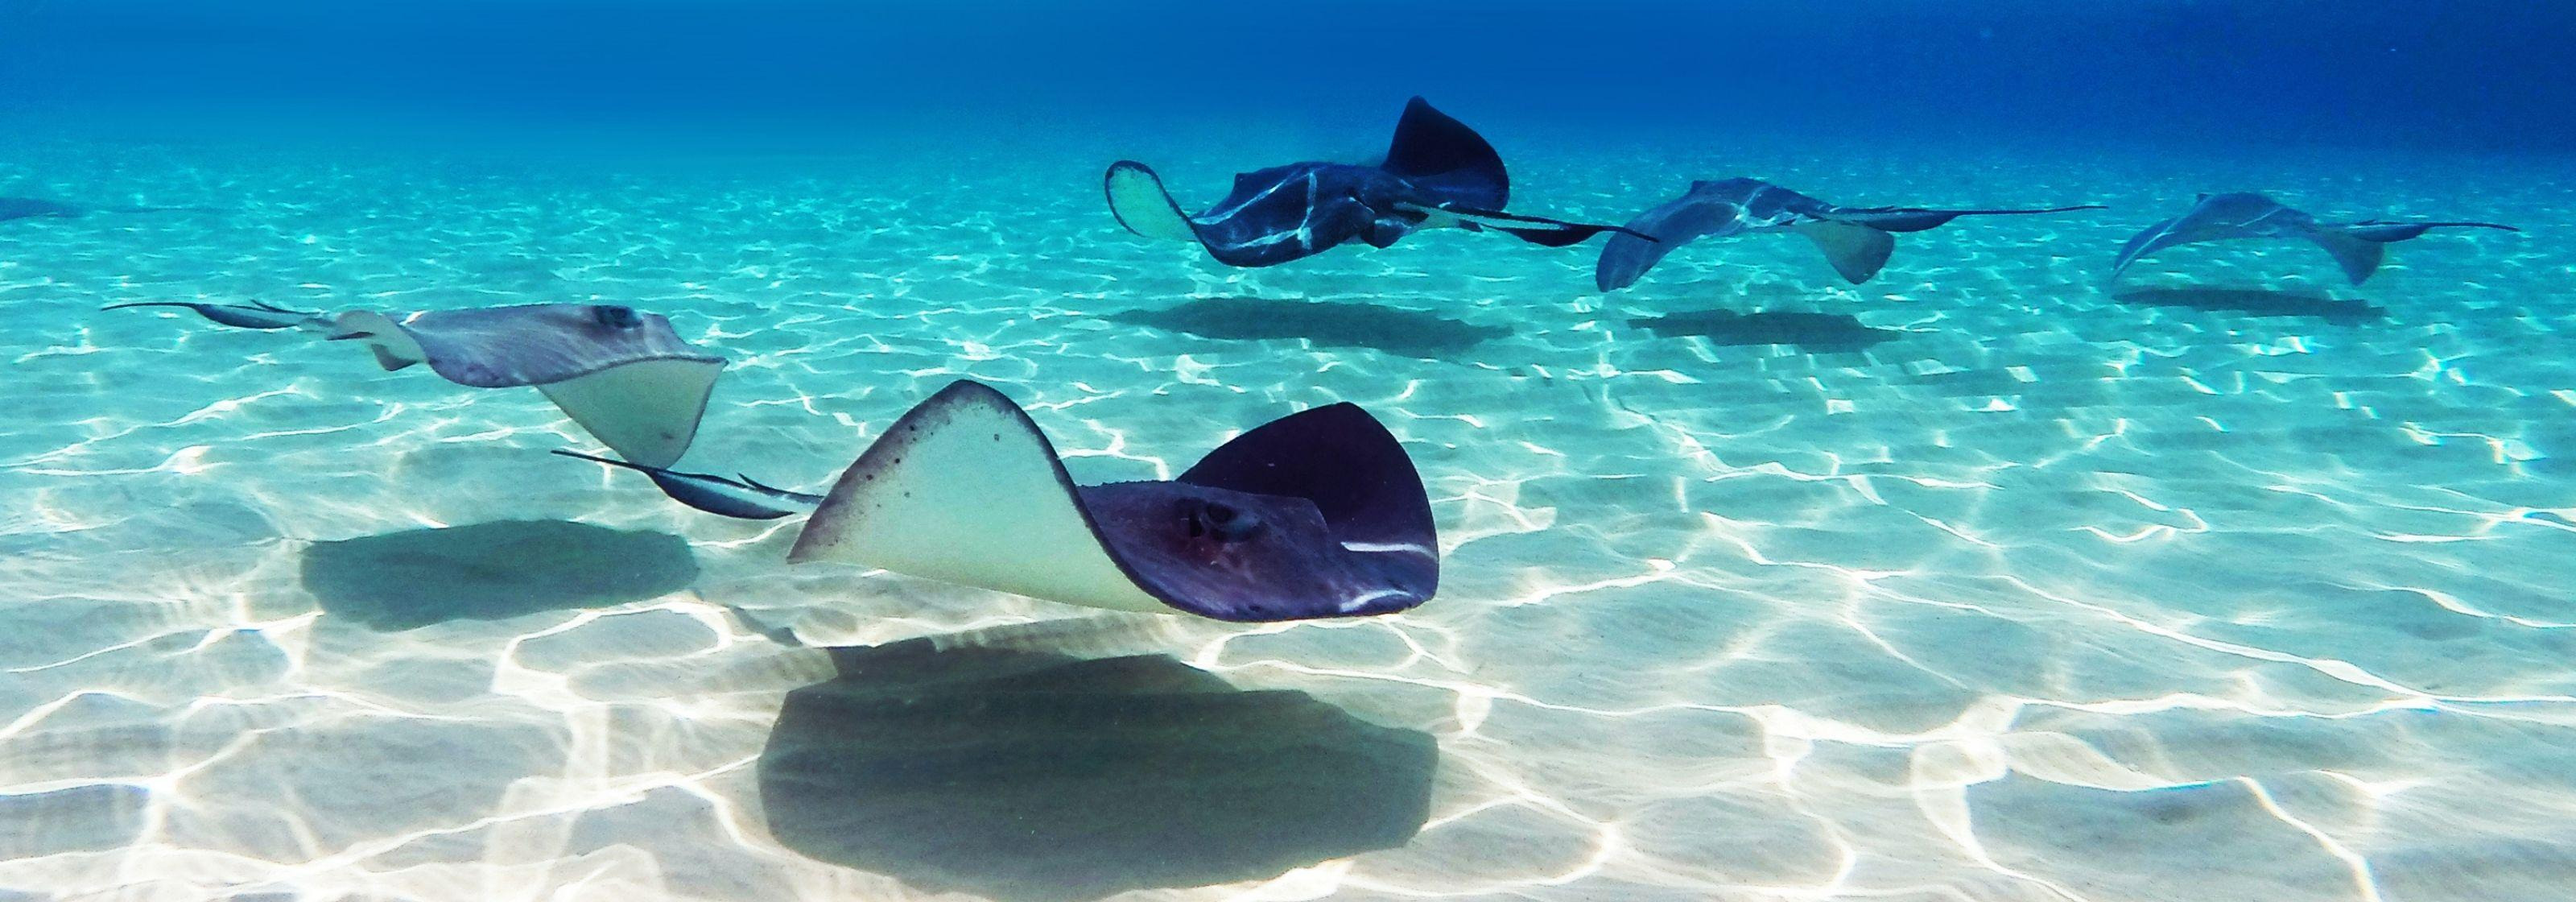 Things to do in Cayman Islands